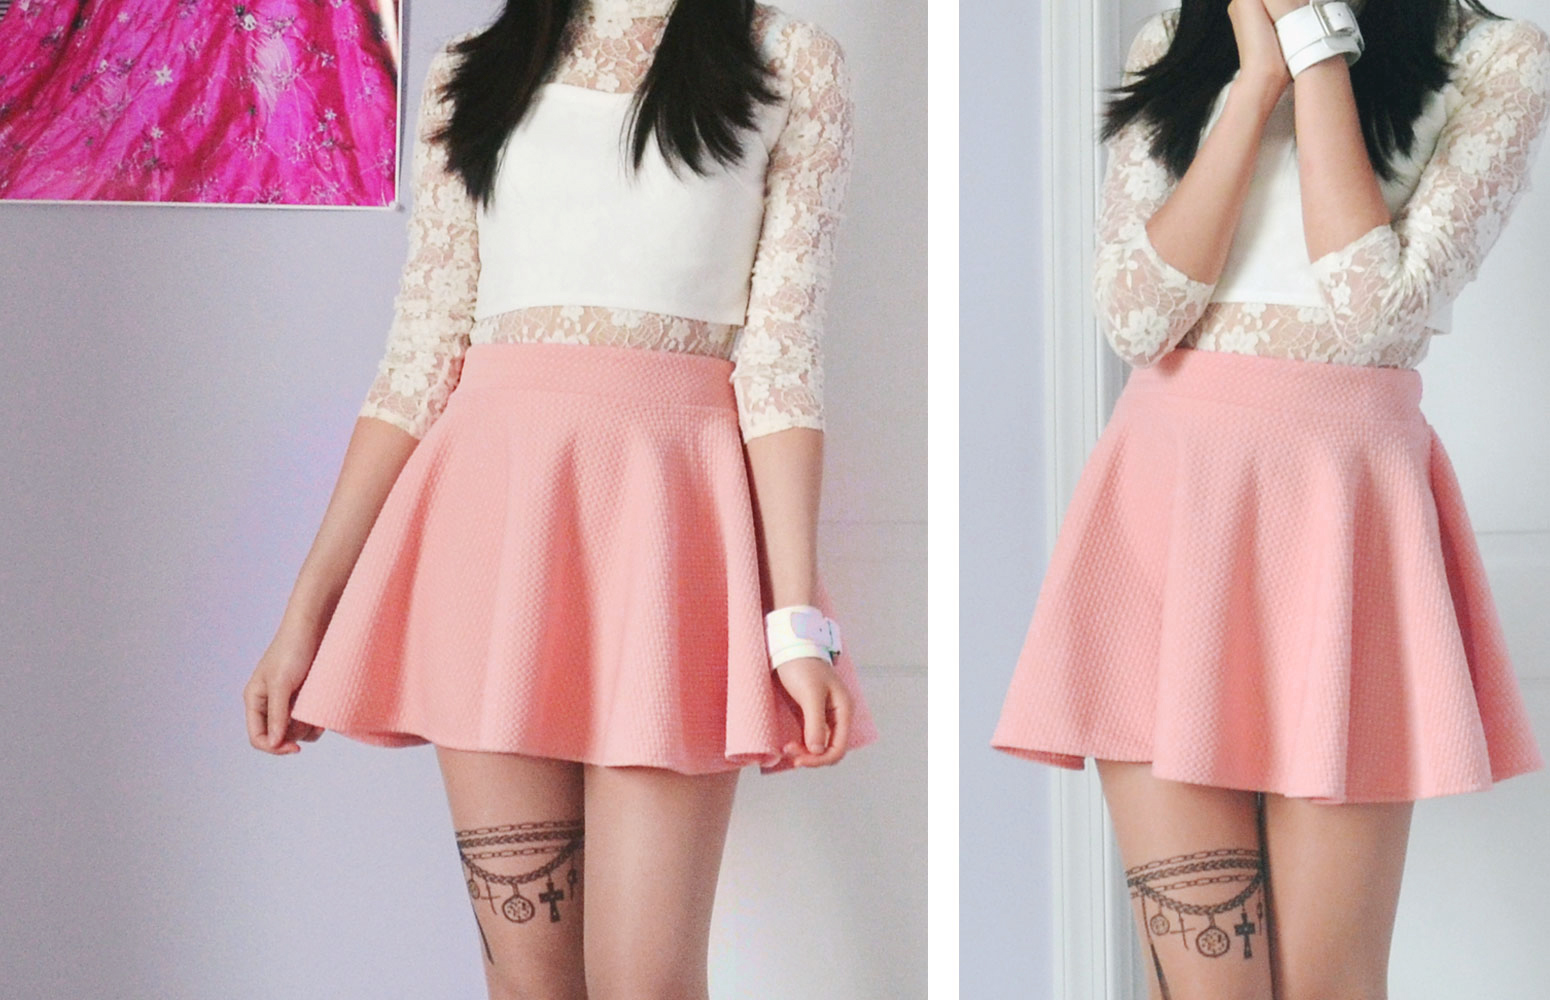 Other photos of this ulzzang and springtime-inspired outfit with the Chicnova pastel skirt, tattoo tights, and bracelet as well as the Snidel crop top and brown high-heeled boots